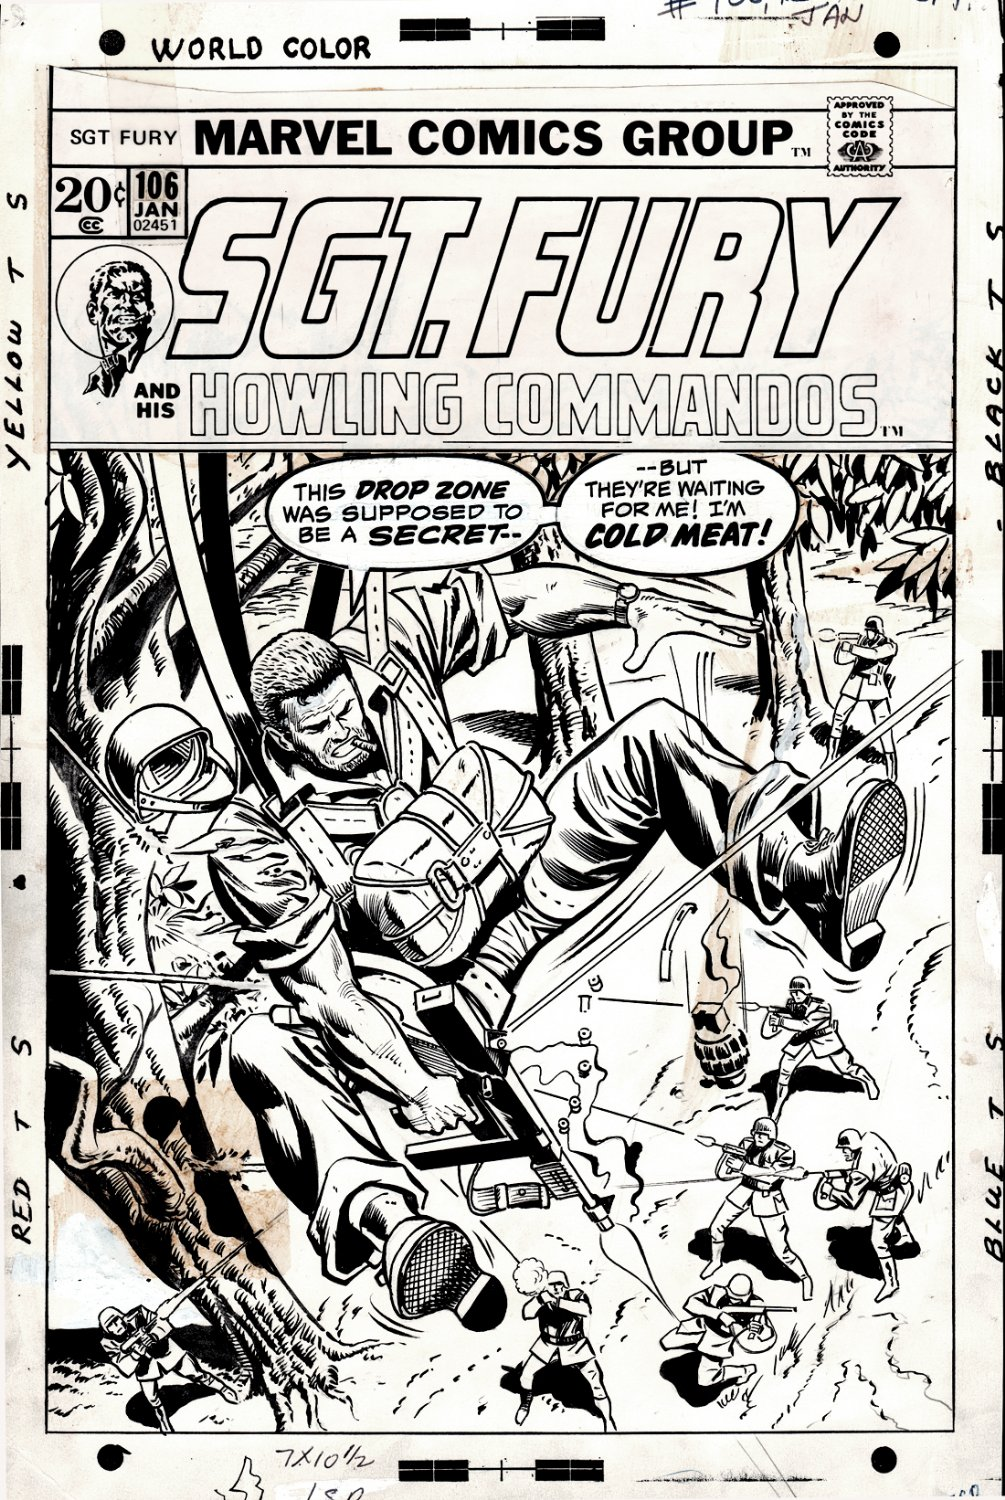 Sgt. Fury #106 Cover (Sgt. Fury In A Nazi Ambush!) 1972